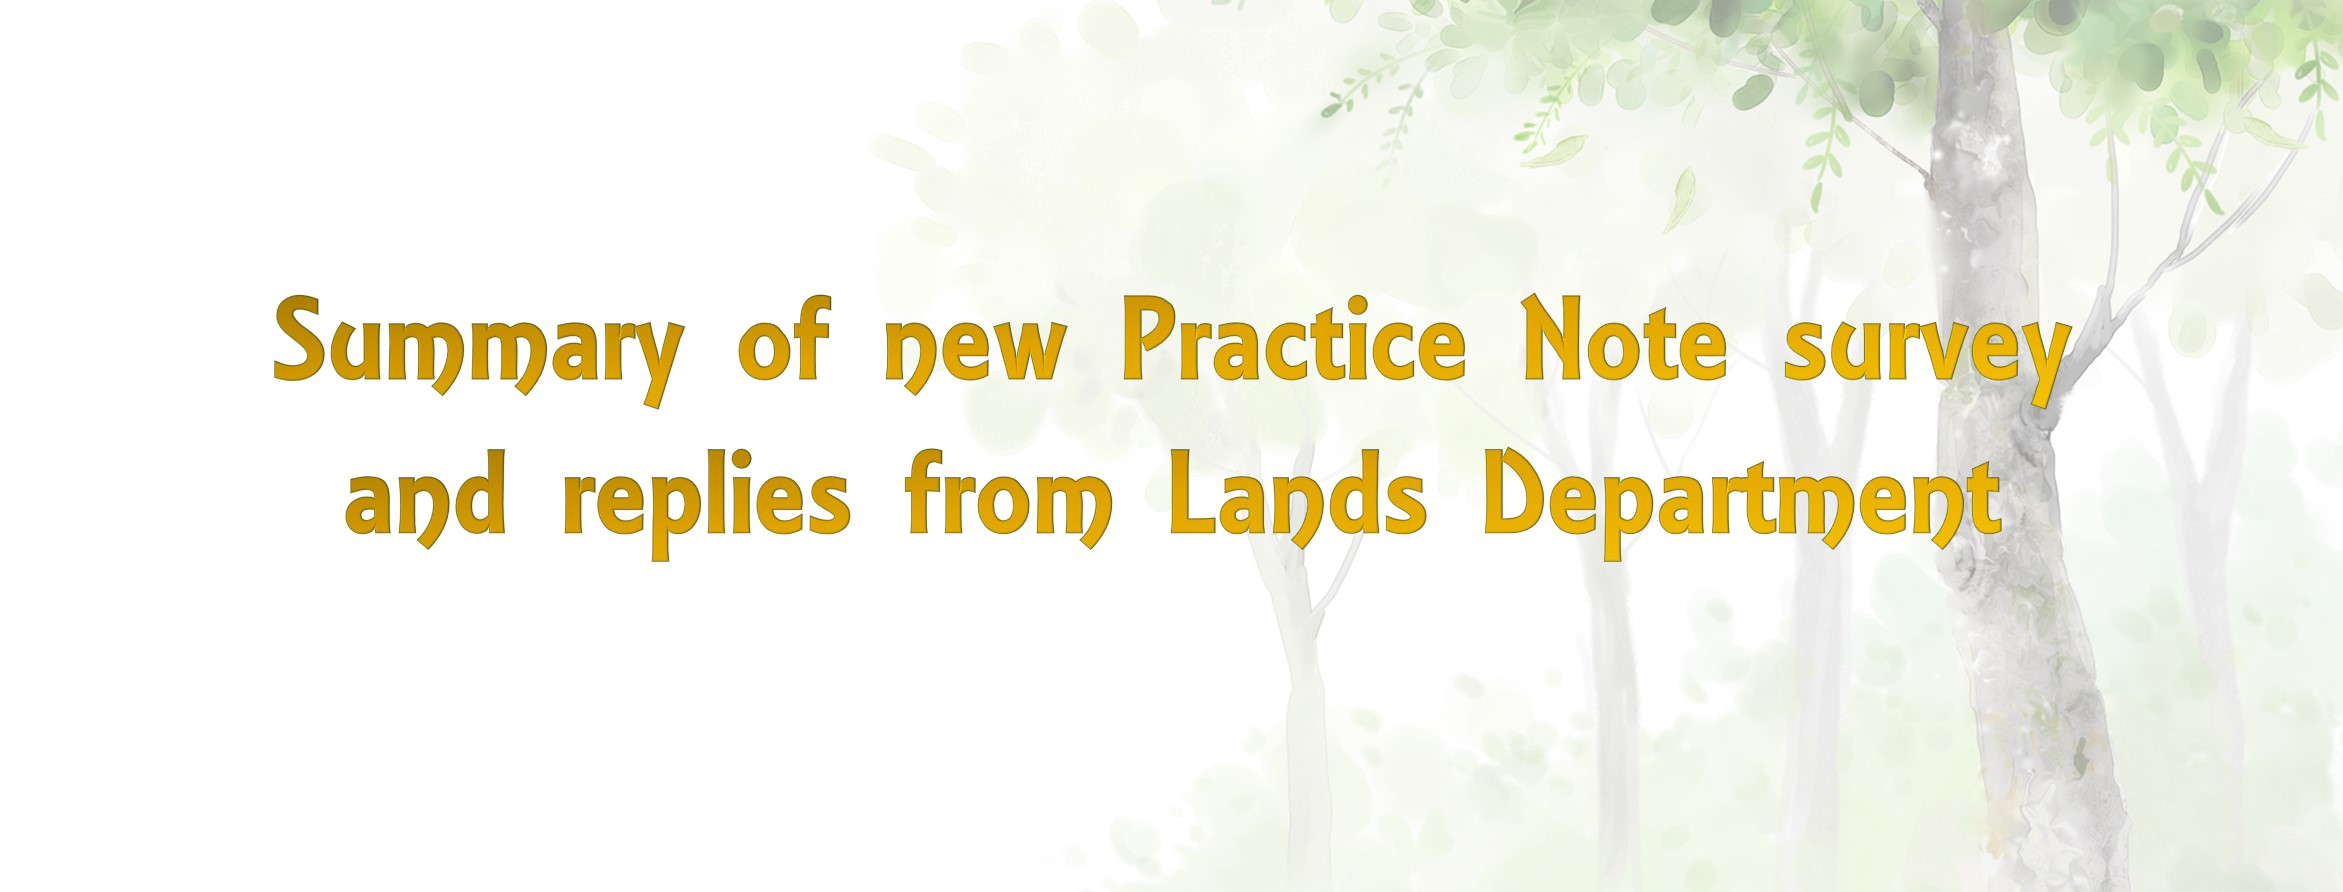 Summary of new Practice Note survey and replies from Lands Department